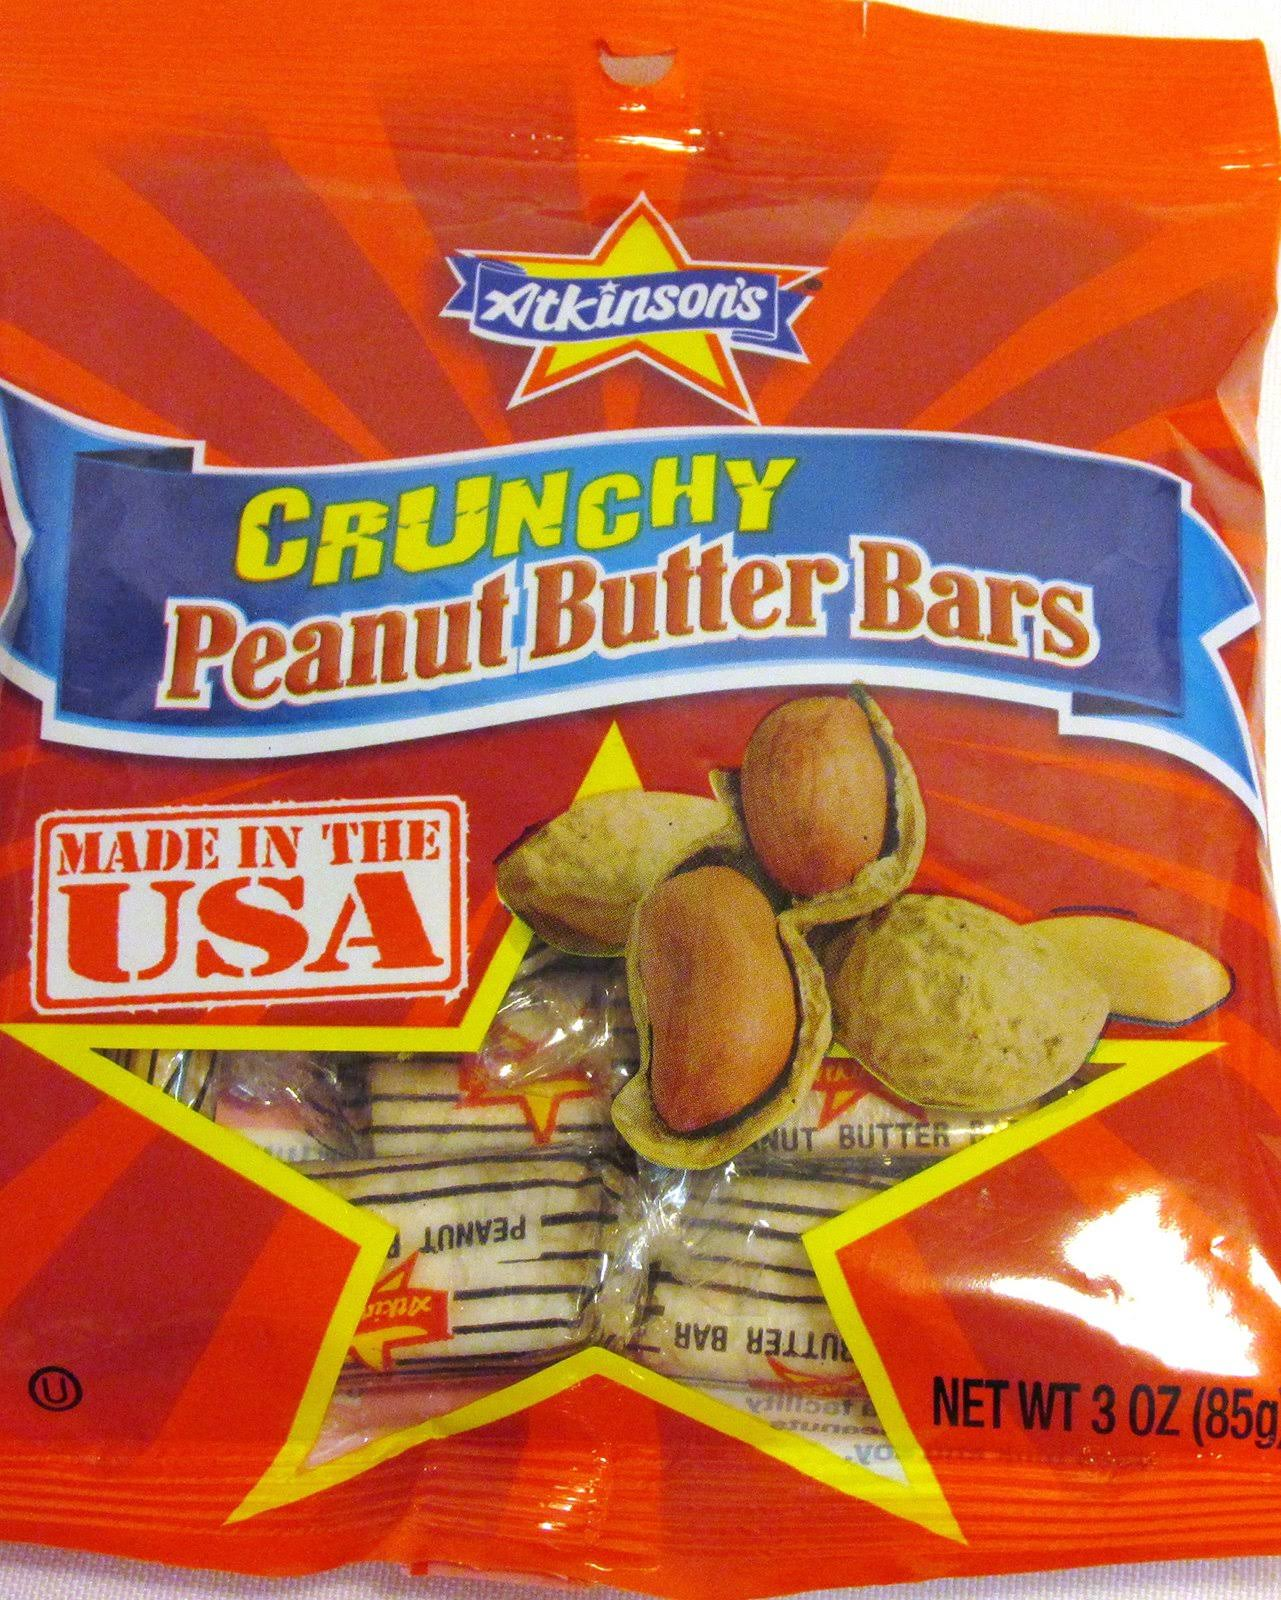 Atkinson's Crunchy Peanut Butter Bars Candy, 3 oz